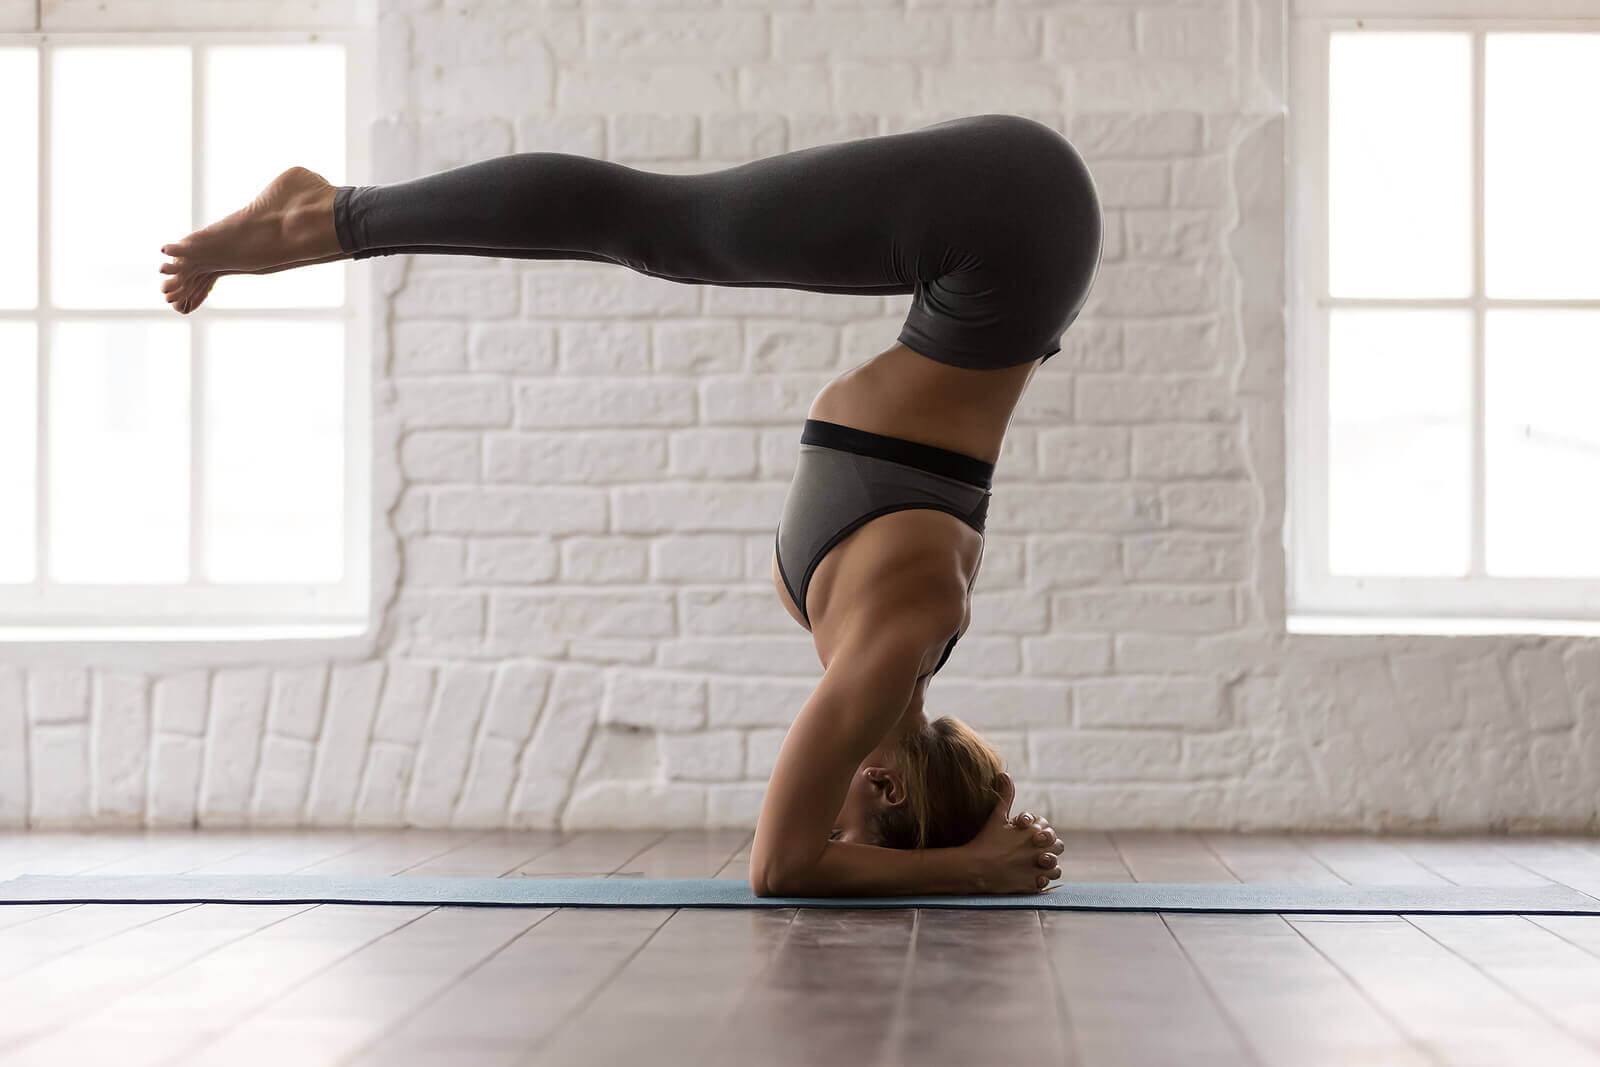 A woman performing a yoga pose.